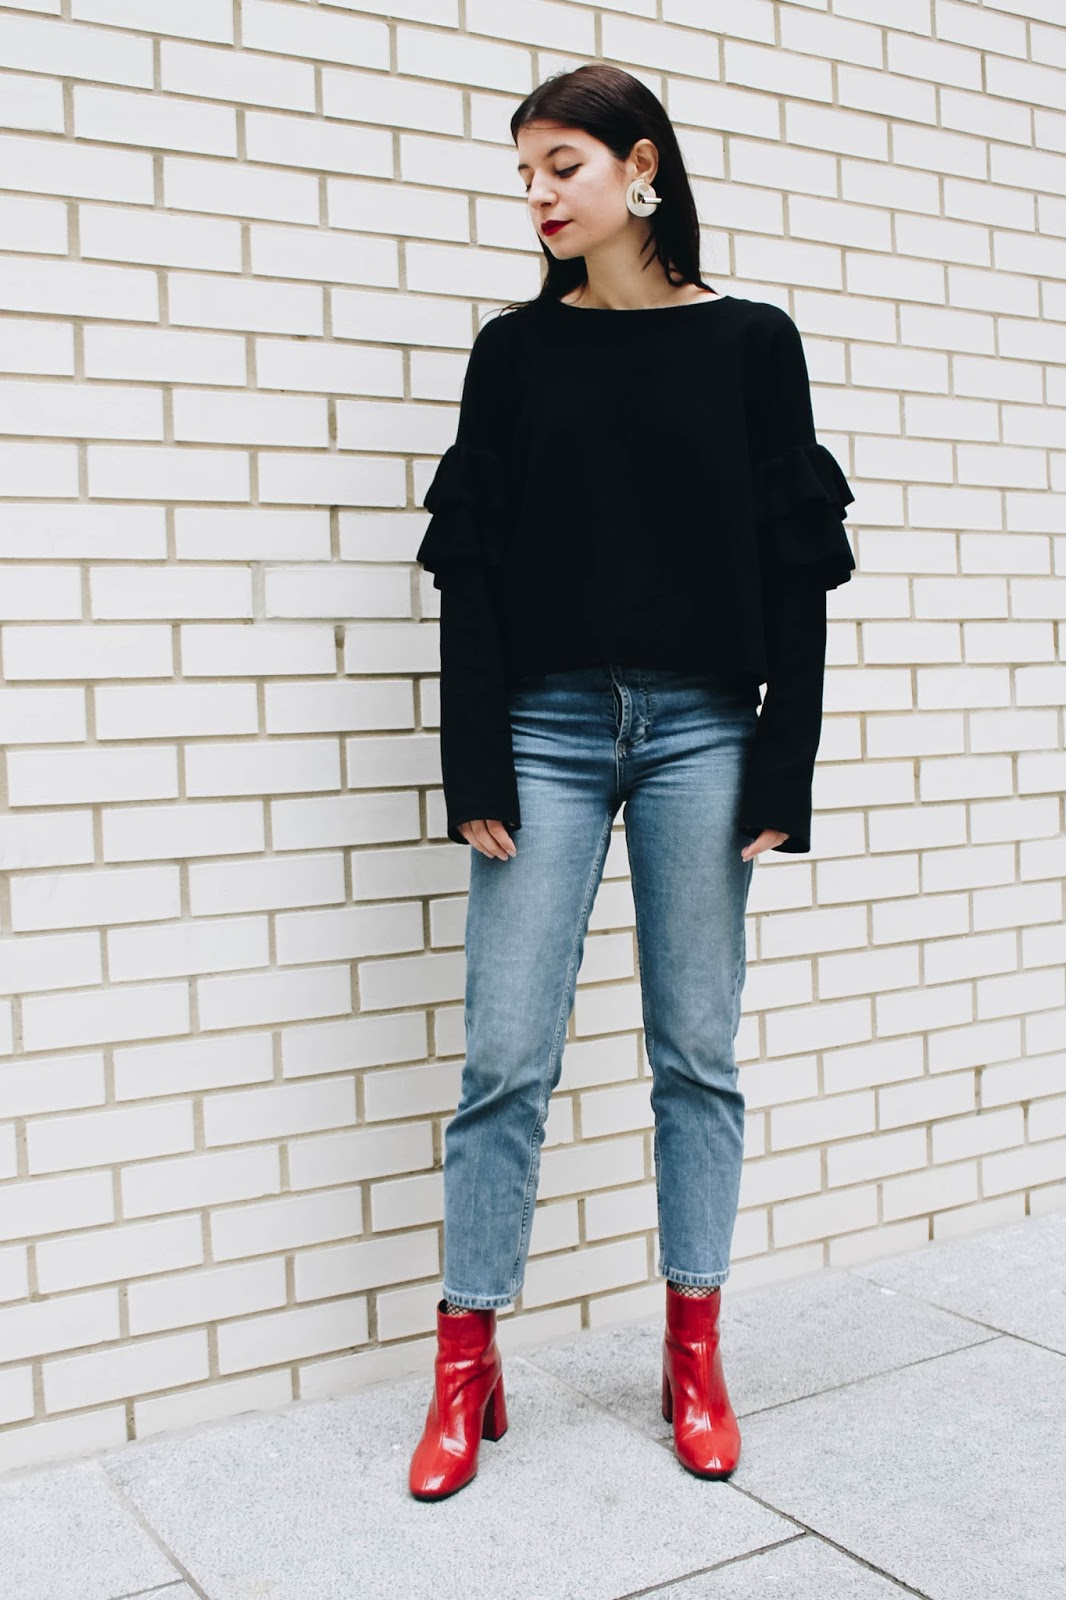 fashion blogger, london blogger, microinfluencer, bandana scarf, leather bag, croc bag, accessorize bag, accessorize leather, denim, red, h&m ruffle top, ruffle sleeves, red boots, red zara boots, statement earrings, accessorize earrings, fishnet